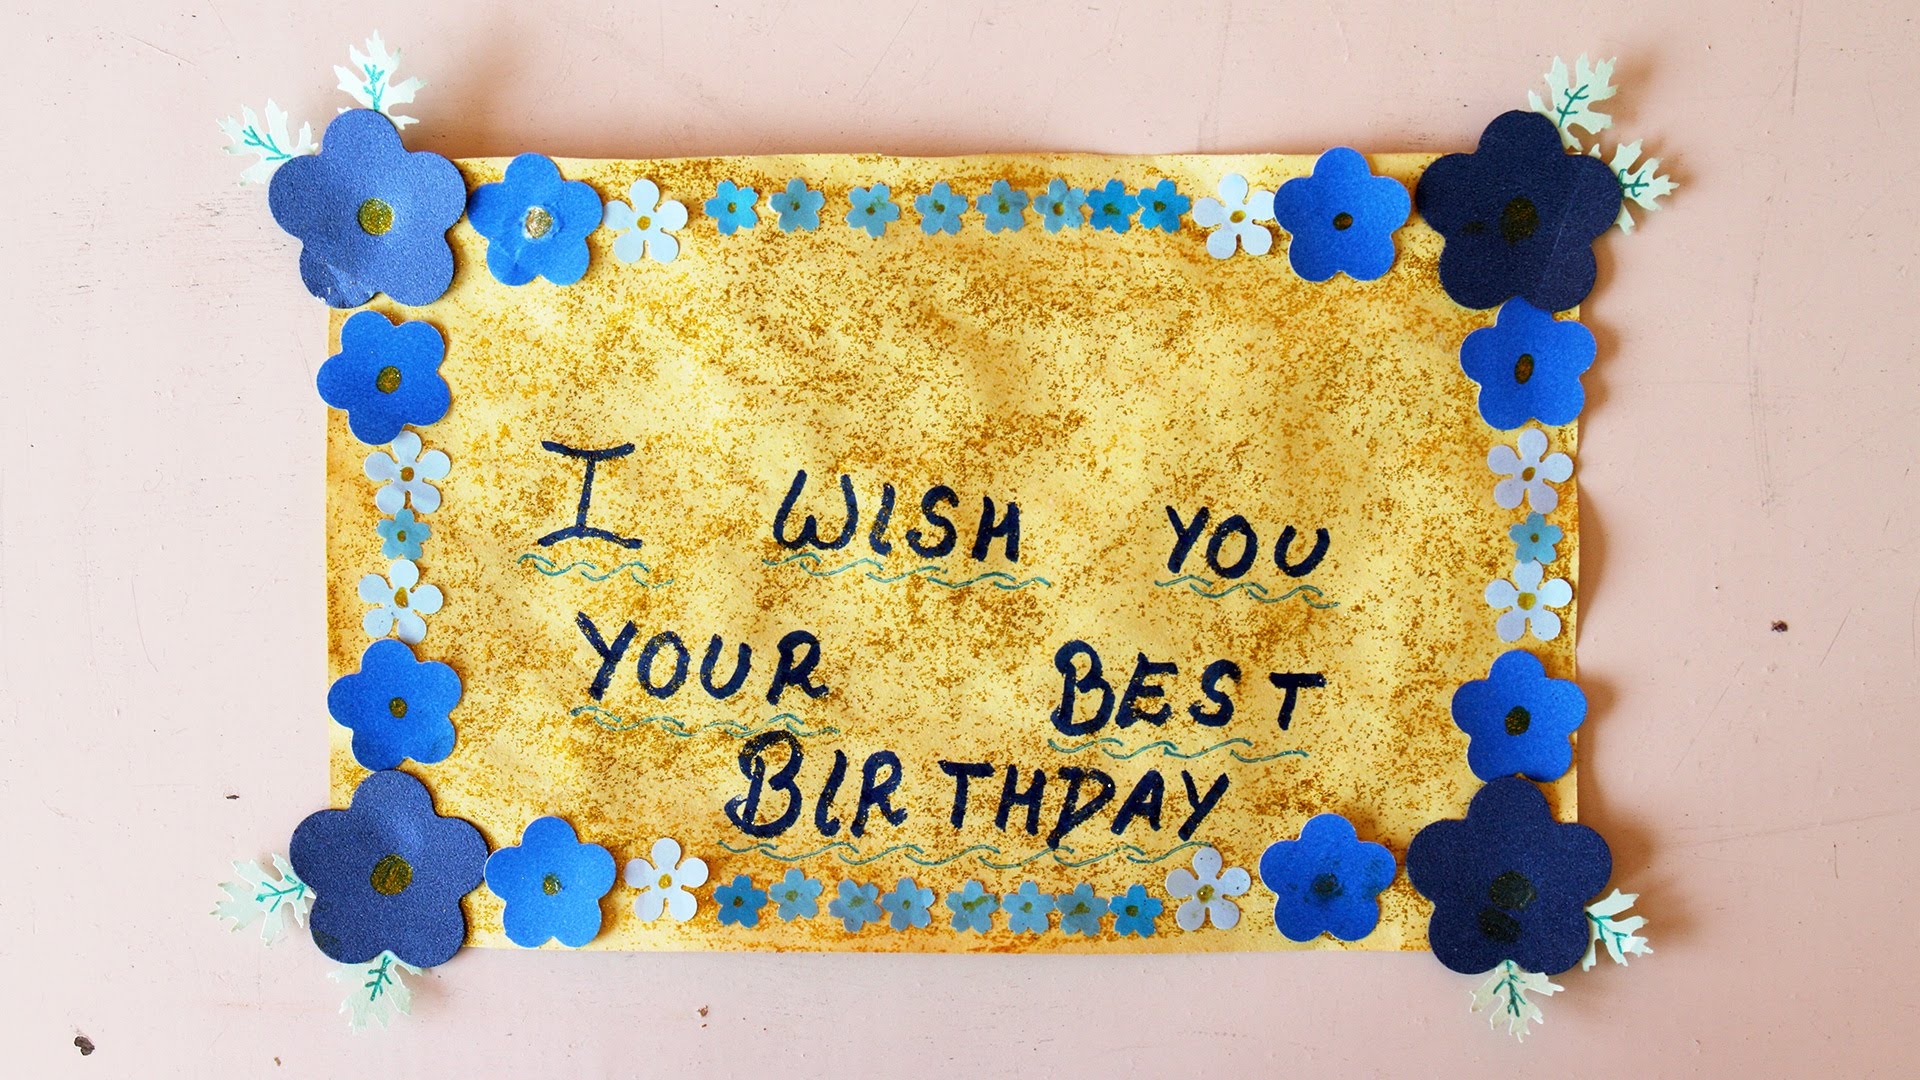 beautiful birthday greeting cards images ; maxresdefault